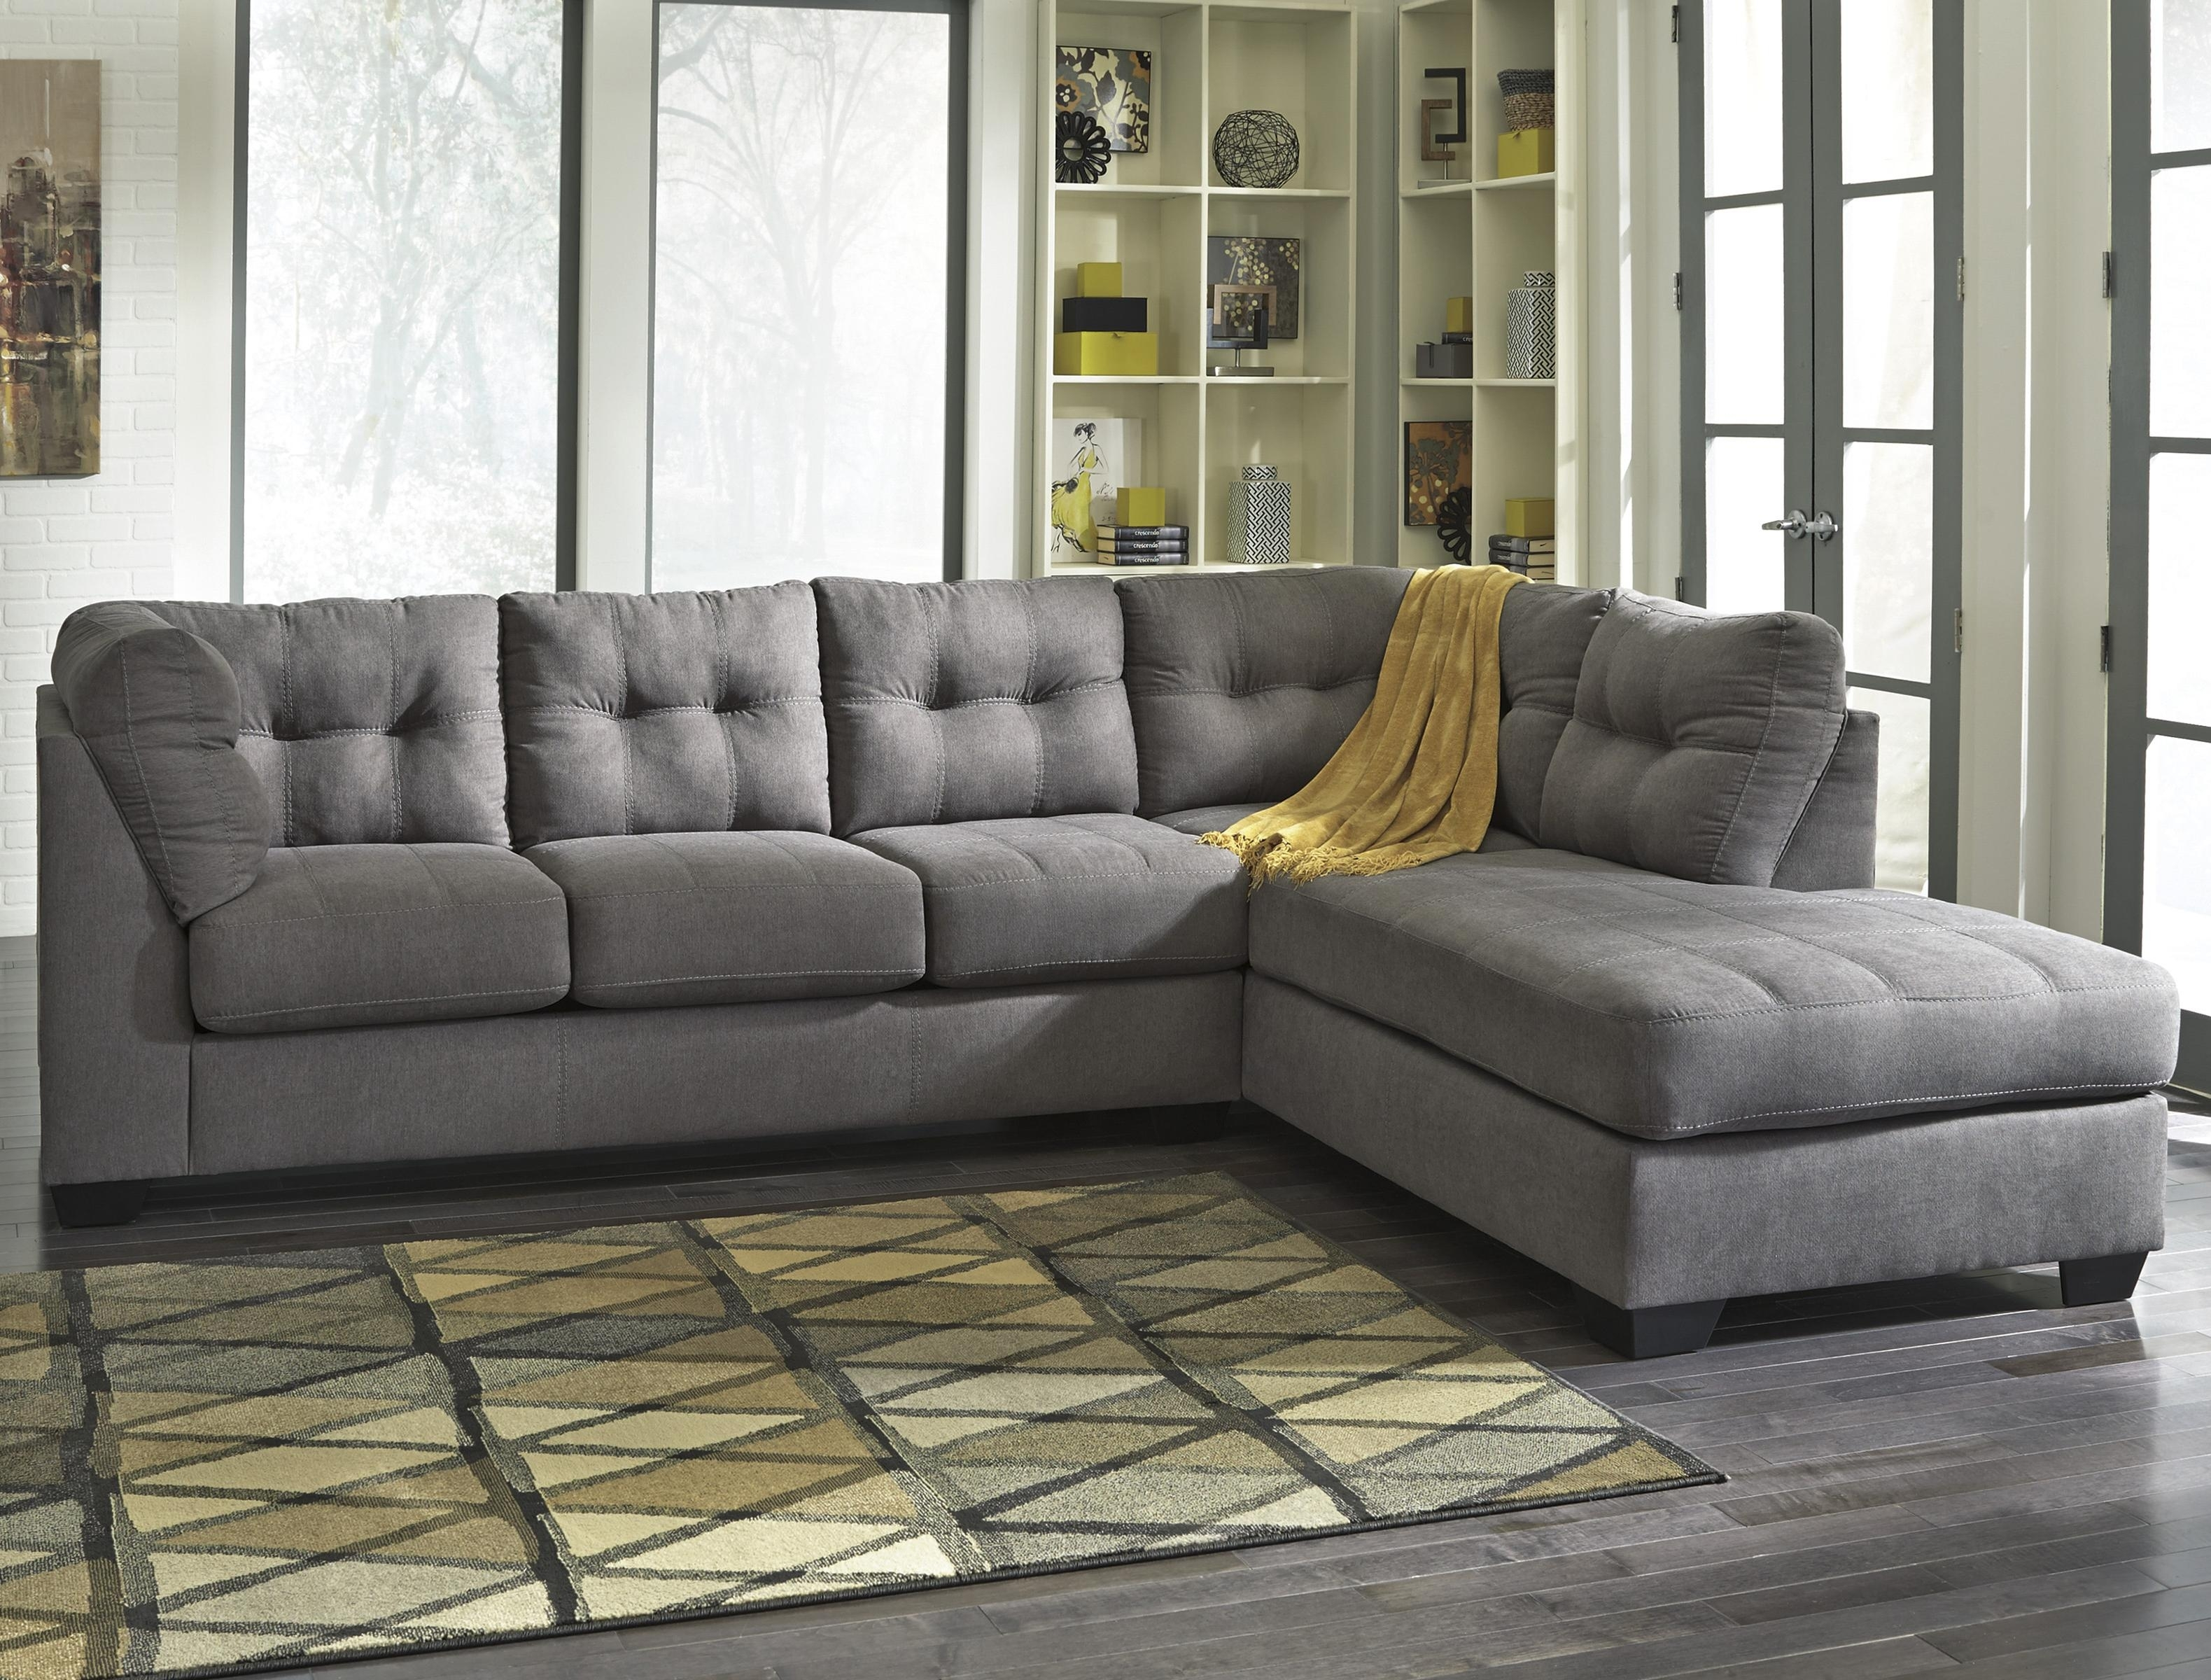 Benchcraft Maier - Charcoal 2-Piece Sectional With Right Chaise inside Mesa Foam 2 Piece Sectionals (Image 4 of 30)